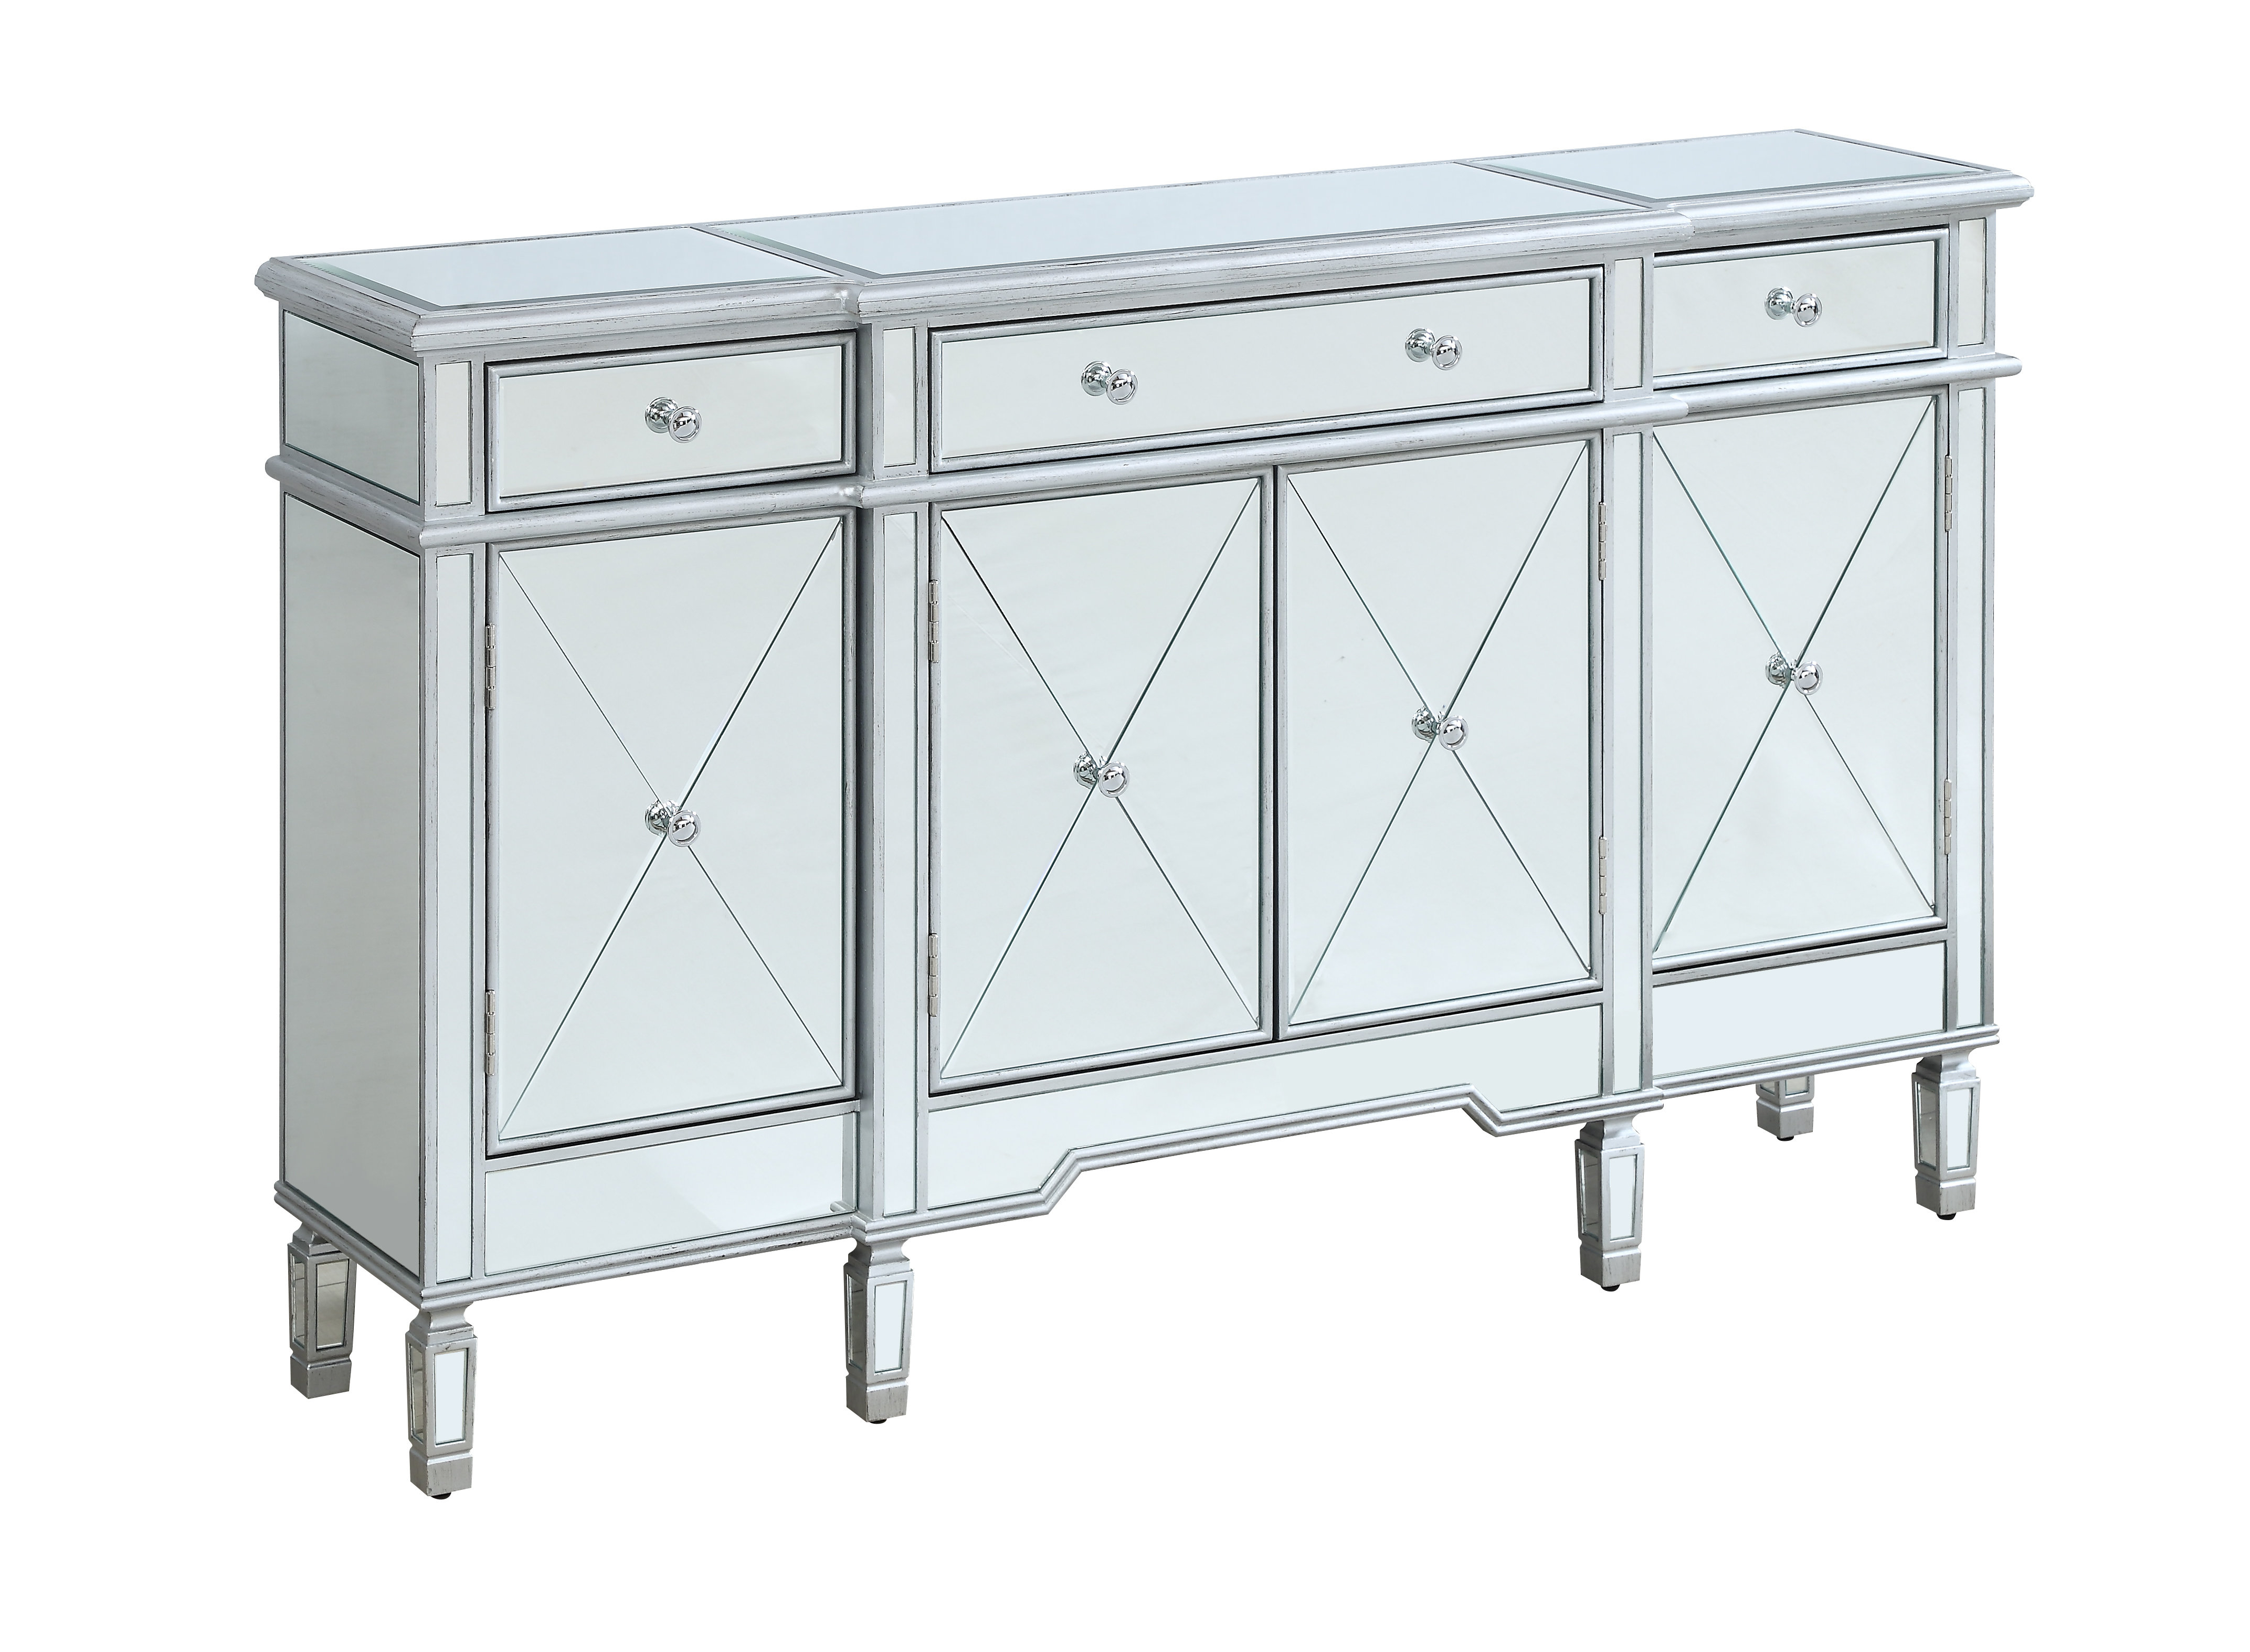 Castelli Sideboard Pertaining To Most Recently Released Castelli Sideboards (View 2 of 20)